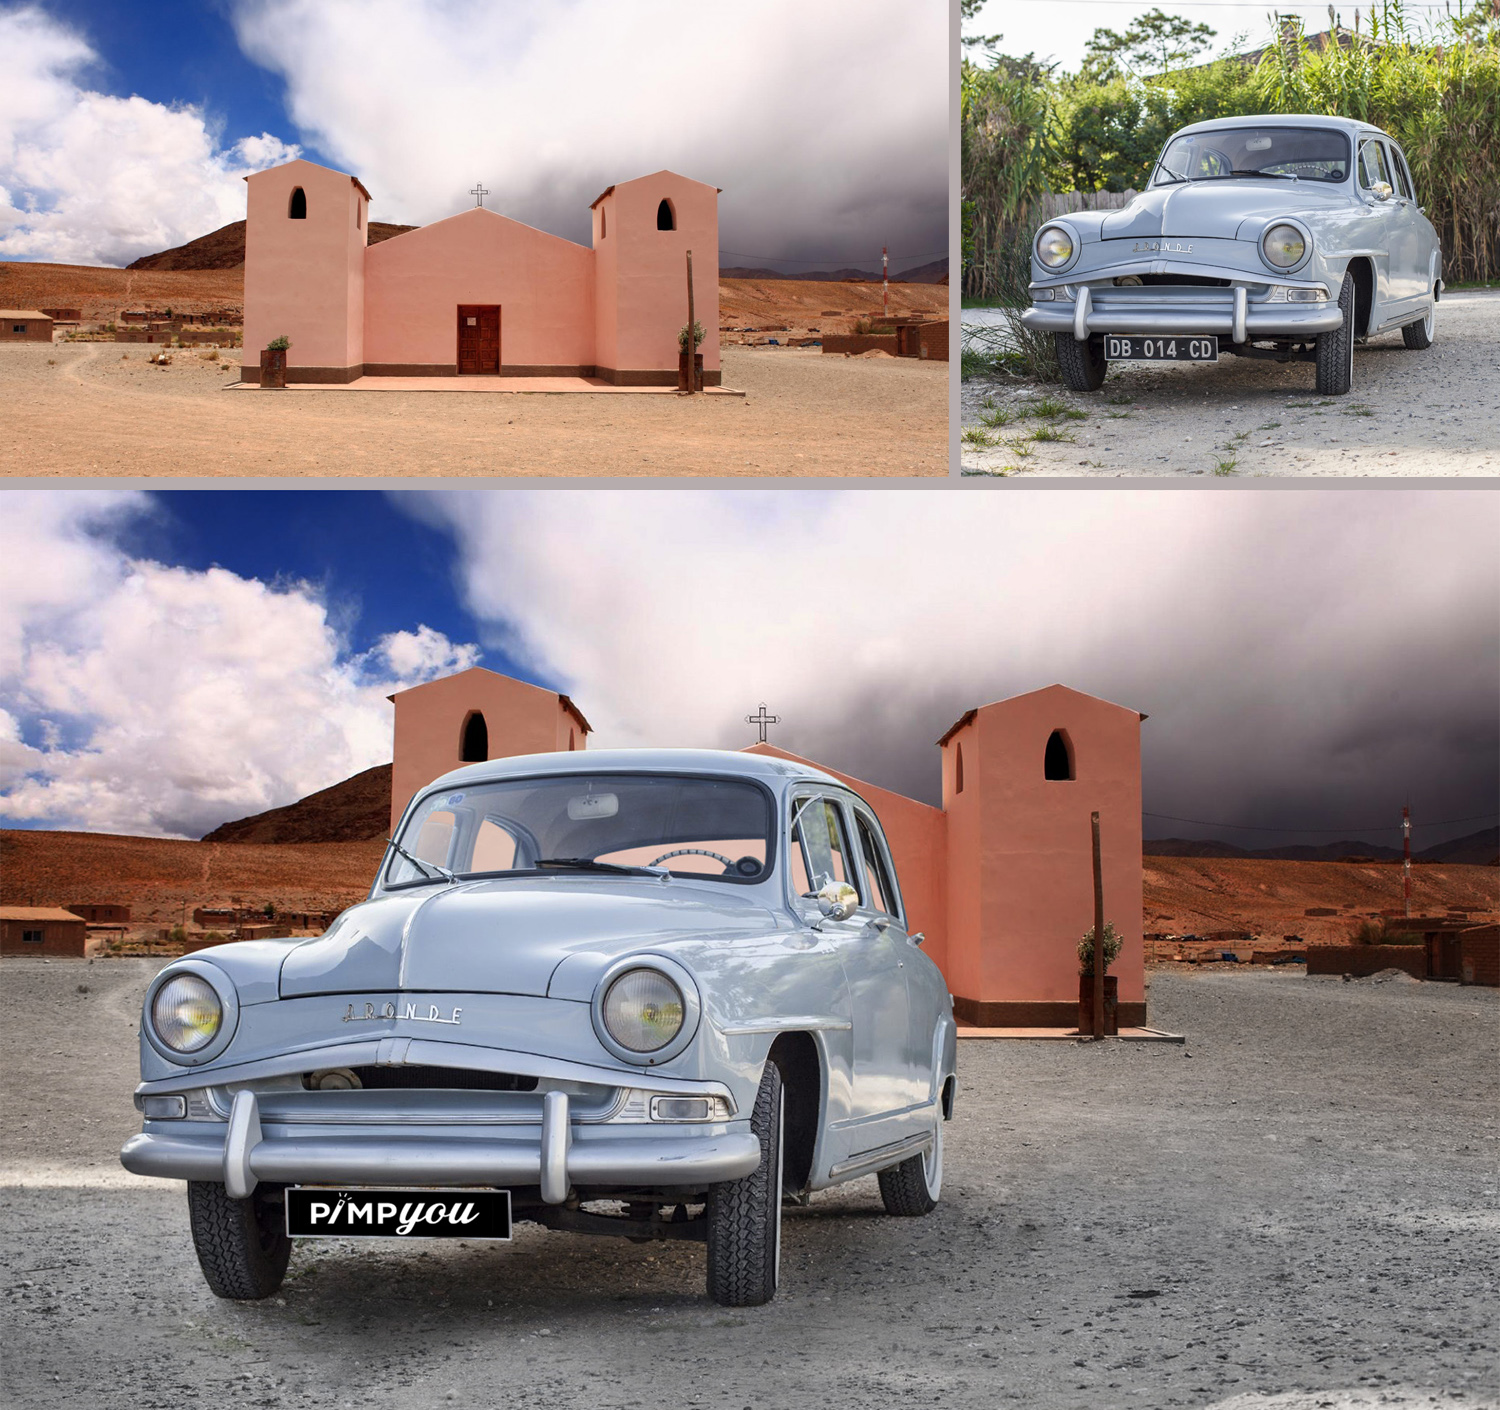 photoclipping cars and photomontage car